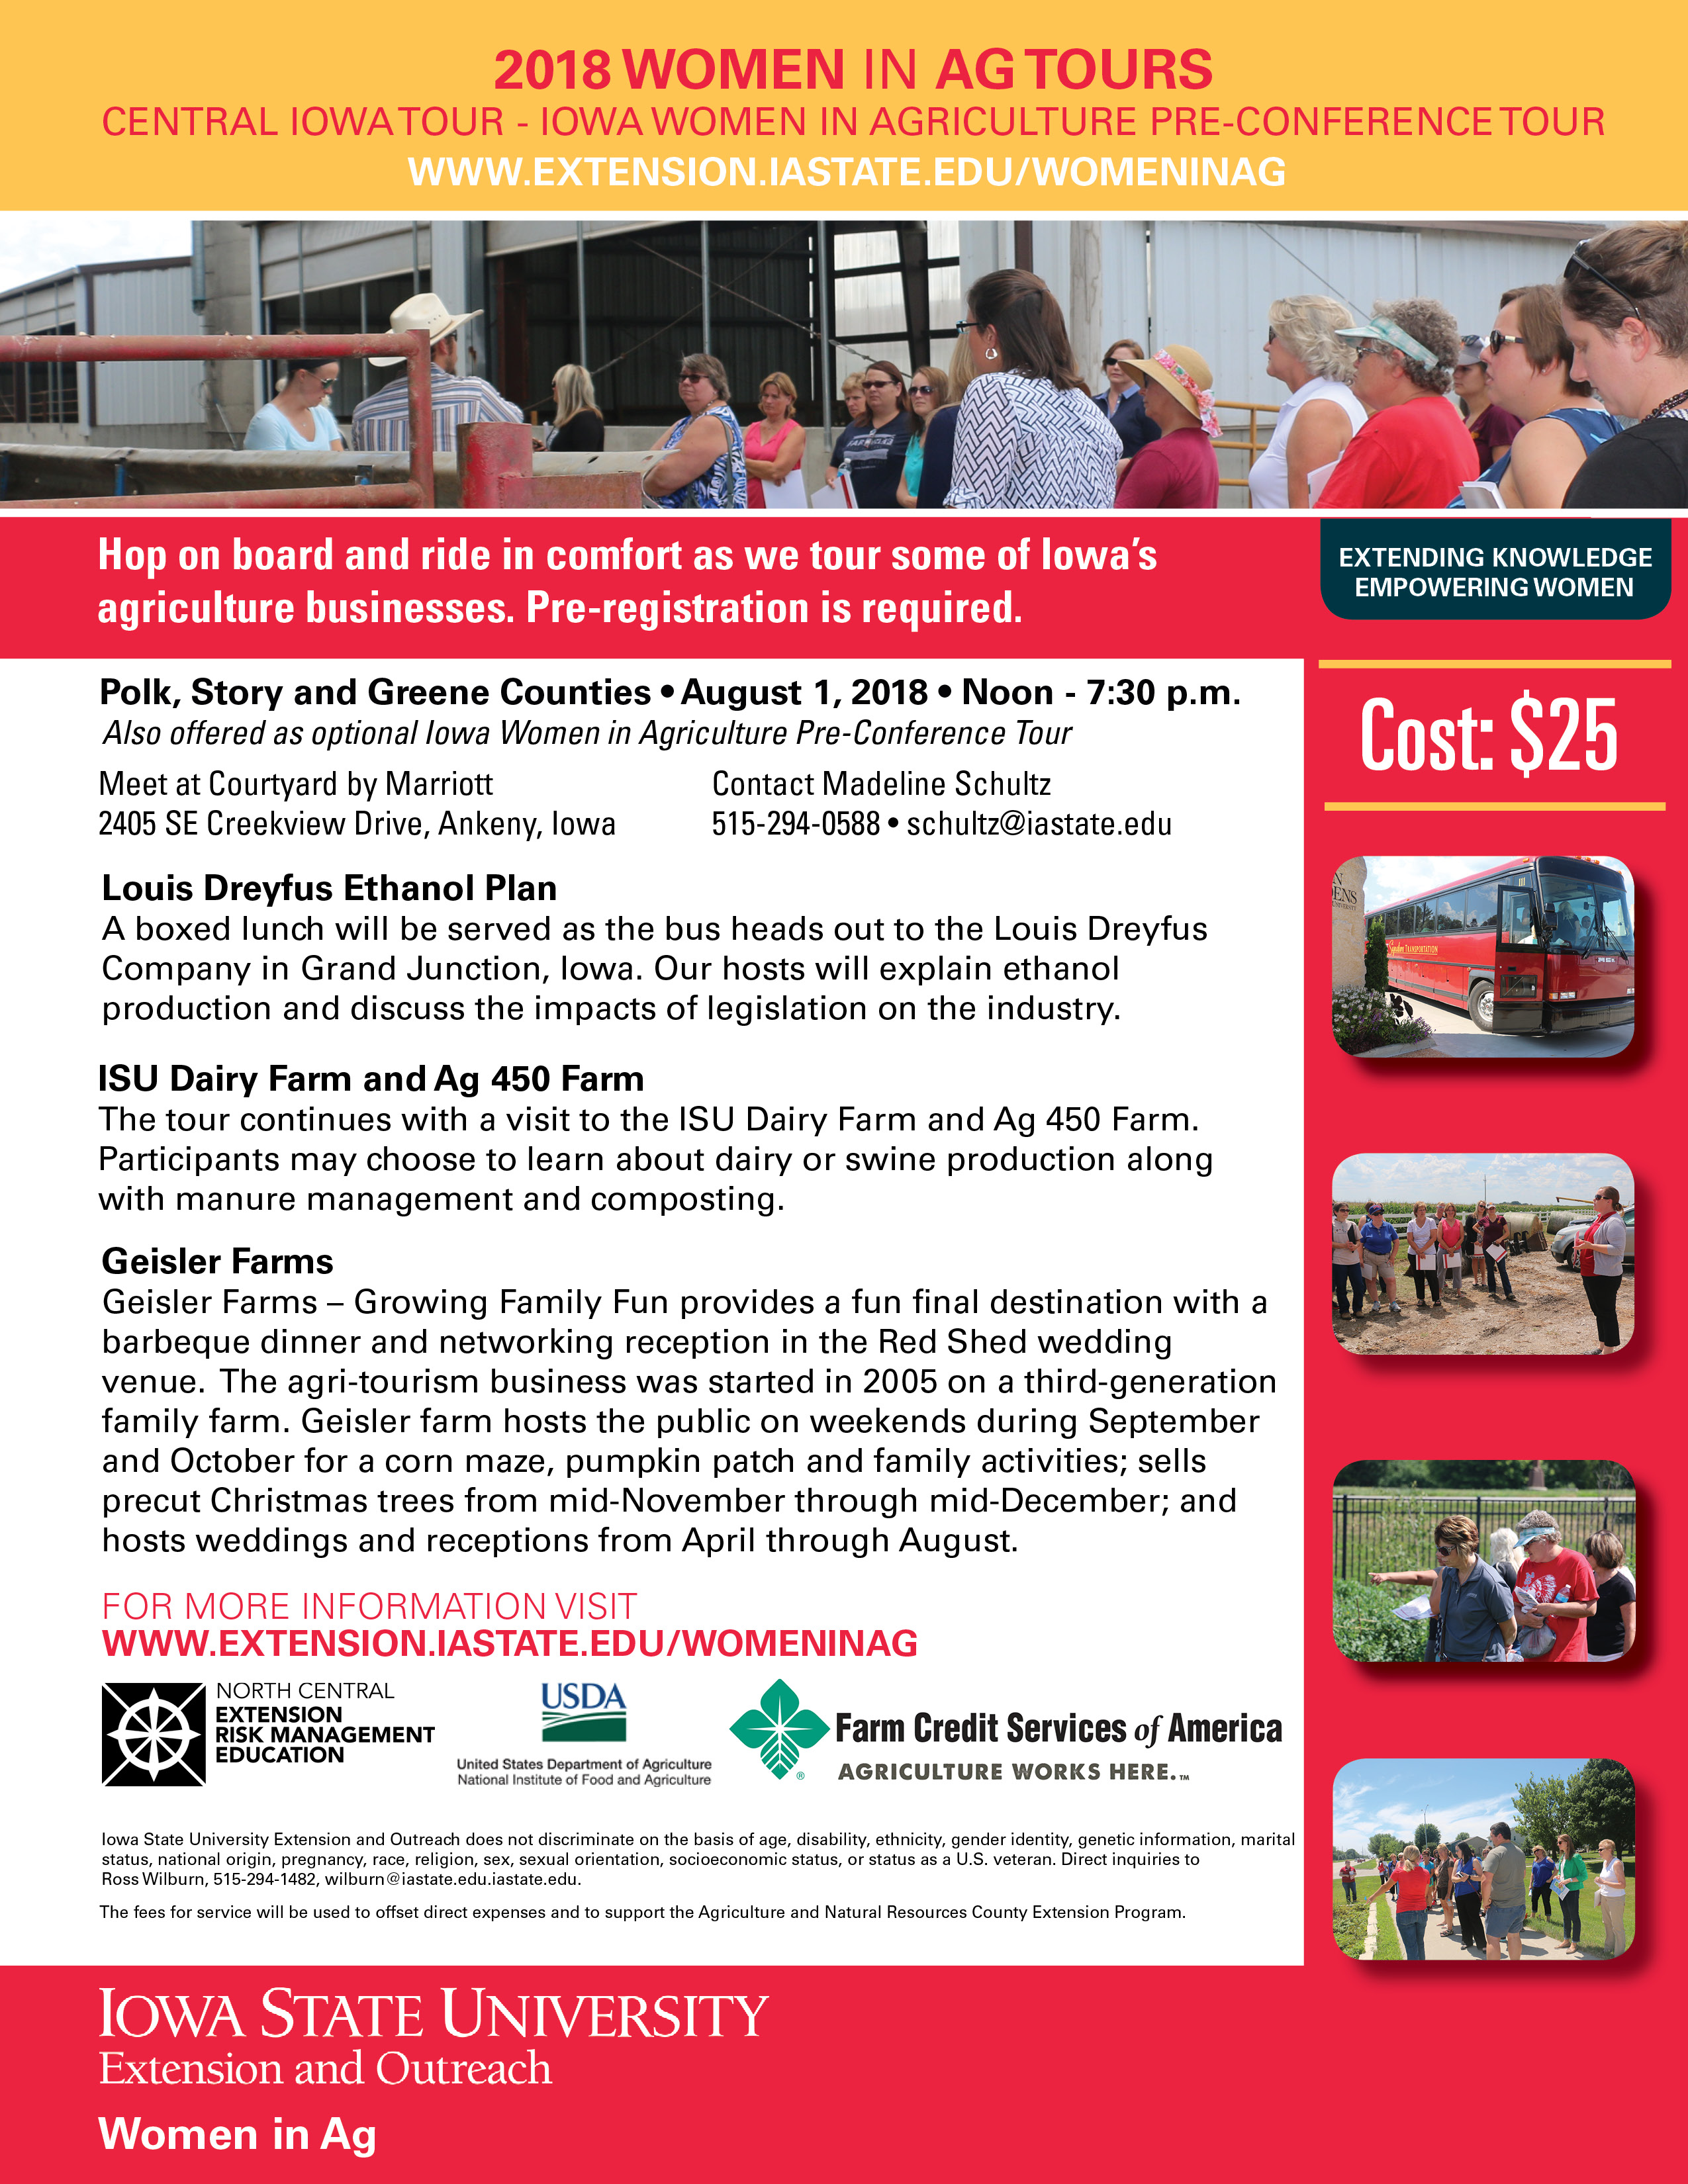 Register Online for the Central Iowa Women in Ag Tour • Polk, Story, and Greene Counties • August 1, 2018